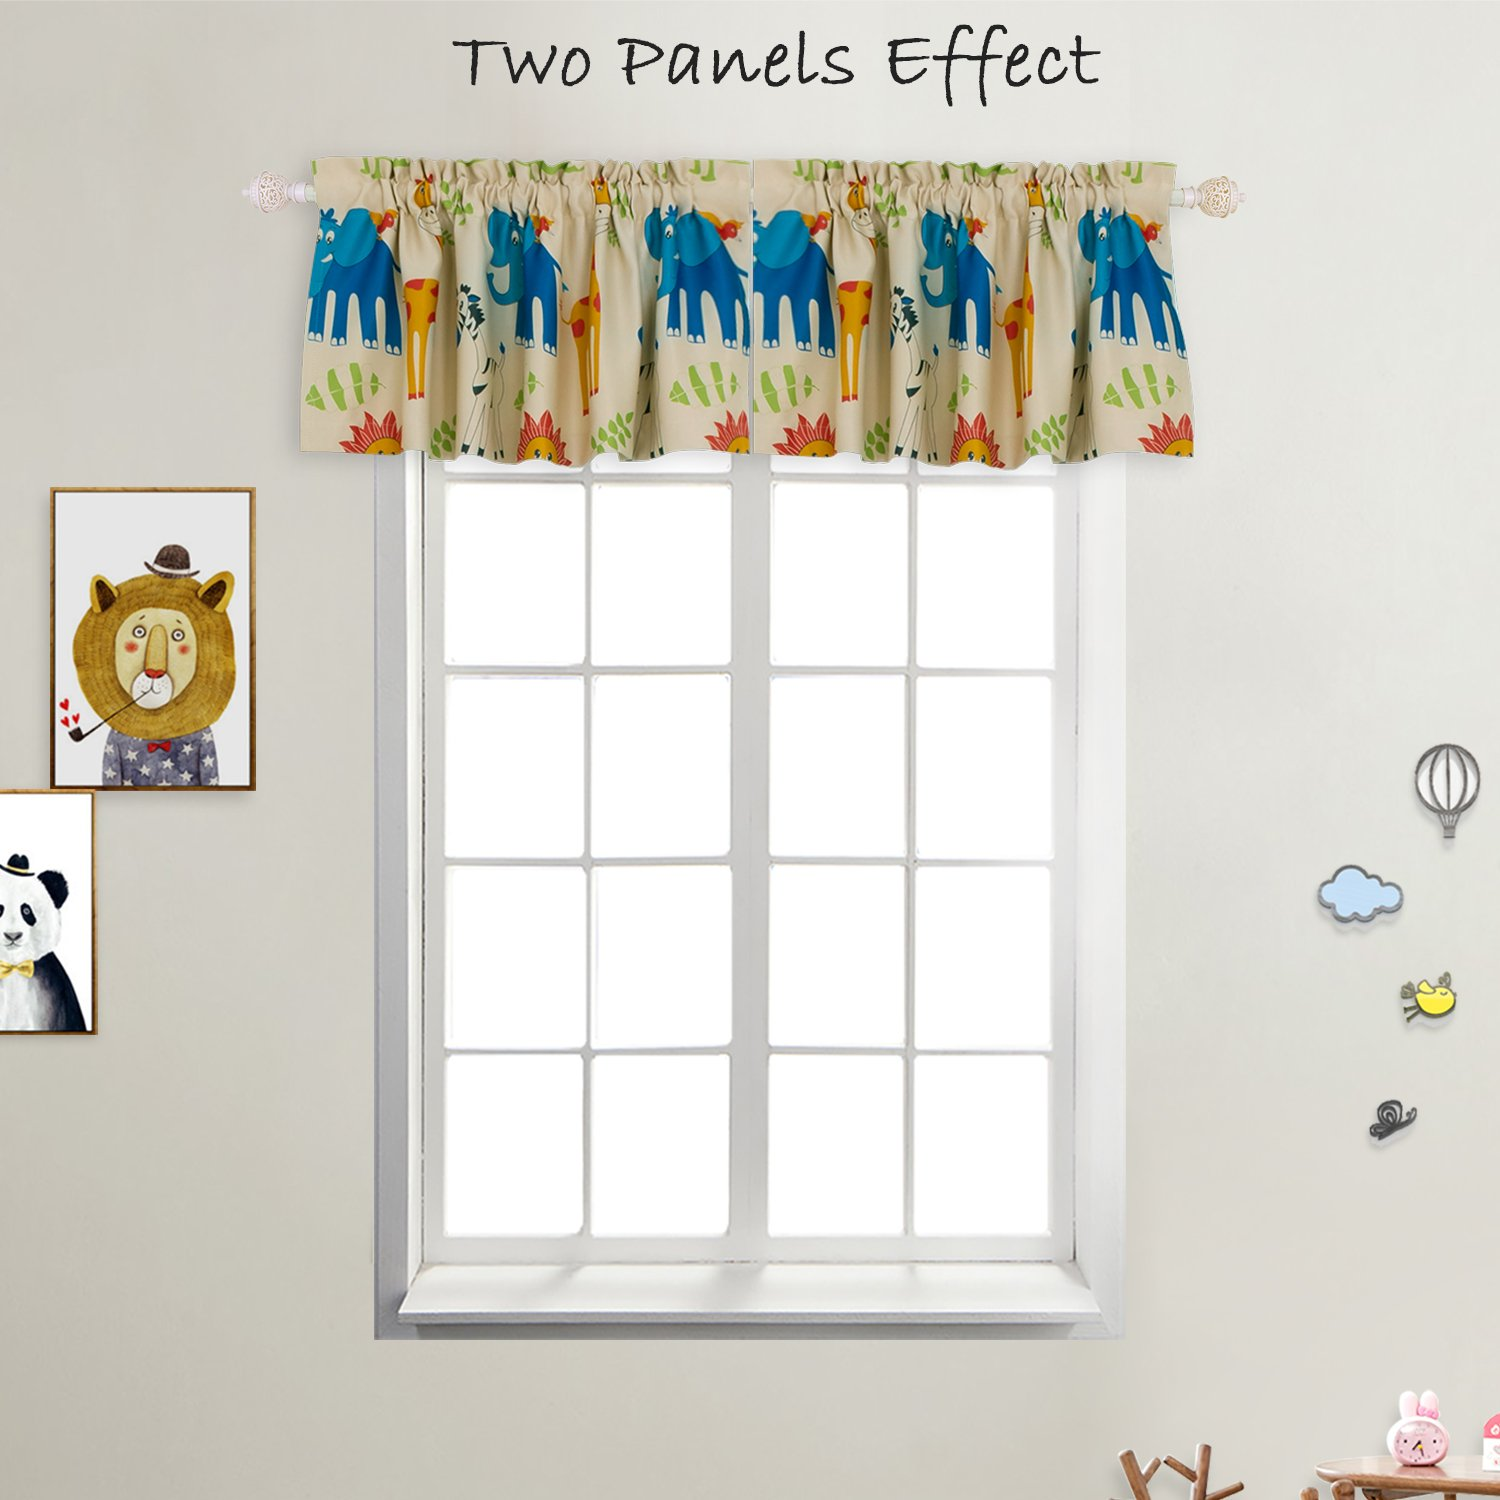 BGment Animal Zoo Kids Curtains for Bedroom Darkening, Rock Poket Valance for Small Window, 2Panels (52'' Wx18 L, Curtains)